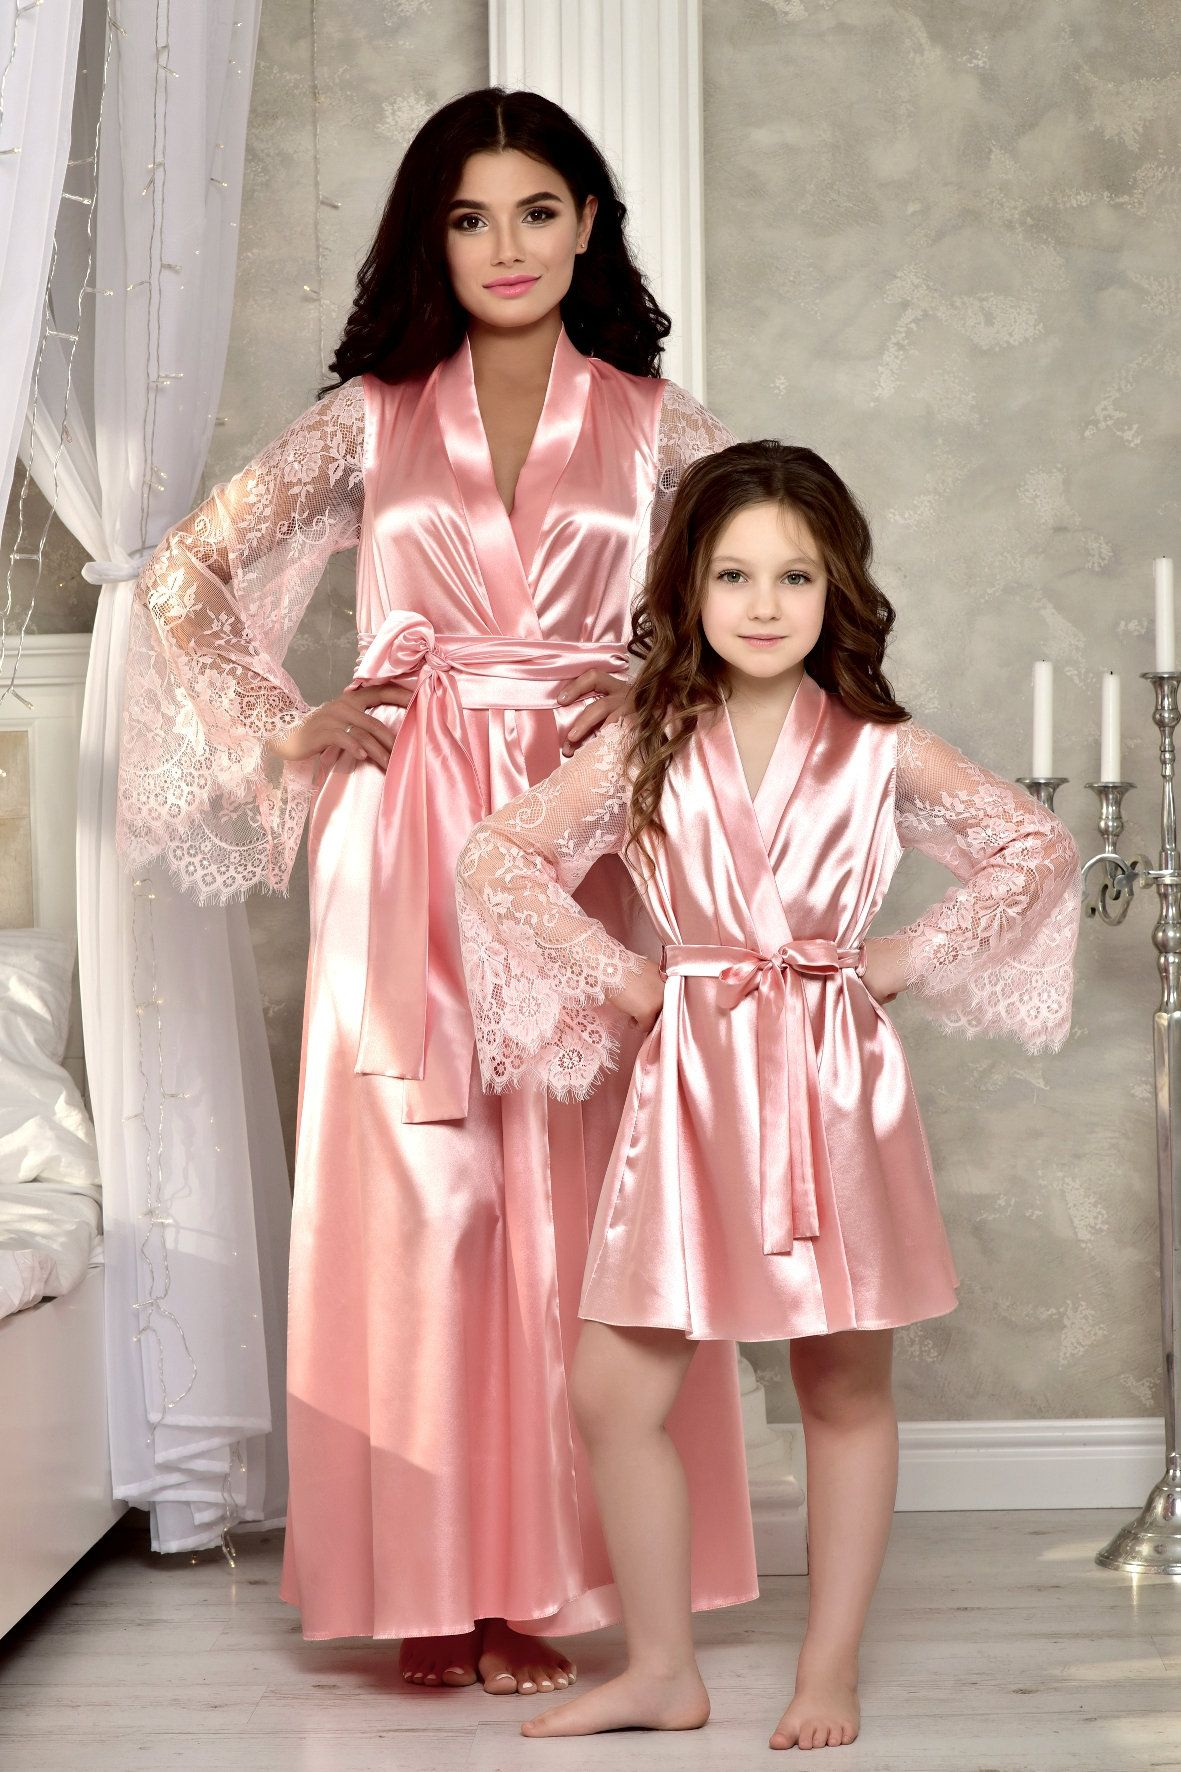 Short MORFORU Clear Rhinestones Flower Girl Silky Satin Kimono Robe Solid Color Kids Sleepwear for Wedding Spa Party